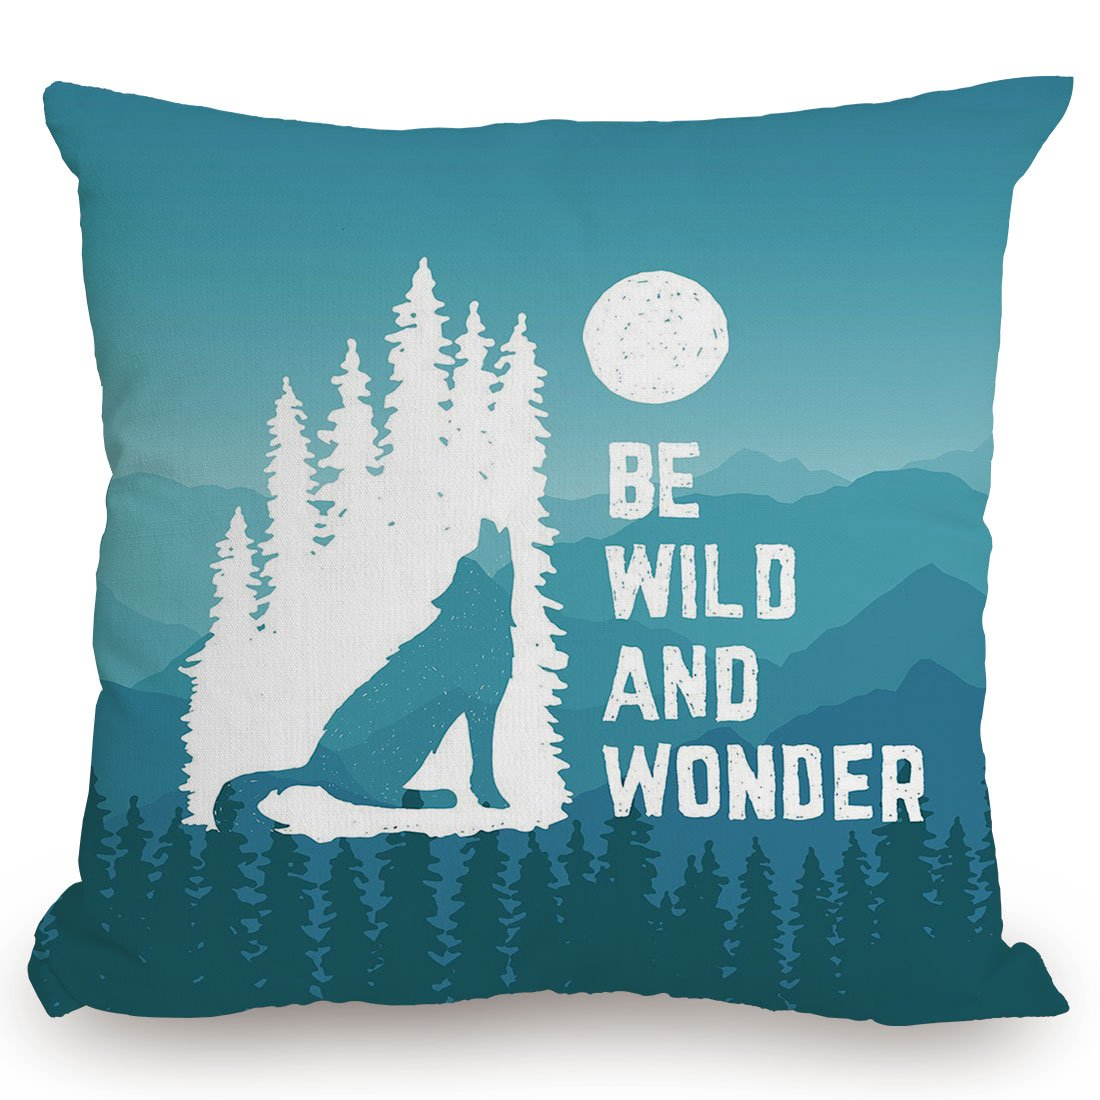 Throw Pillow Cushion Cover,Adventure,Hand Drawn Be Wild and Wonder Quote Howling Wolf in the Woods under Moon,Night Blue White,Decorative Square Accent Pillow Case